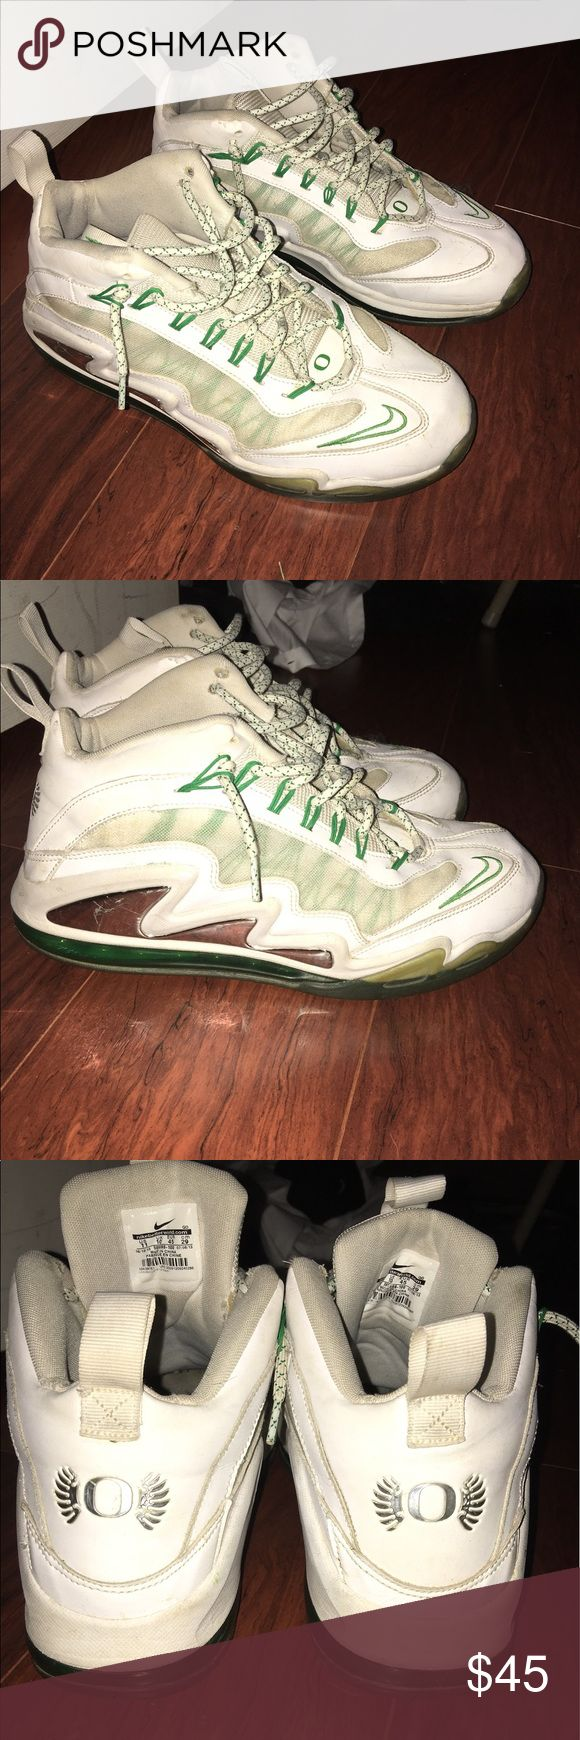 Oregon Nike Air Max 360 Diamond Ken Griffey Shoe Oregon Nike Air Max 360 Diamond Ken Griffey Shoe. Size 11. Oregon Ducks edition, Comfortable good looking sports shoe  and to work out in. Shoes are worn condition 8/10. Cool rate college team shoes Nike Shoes